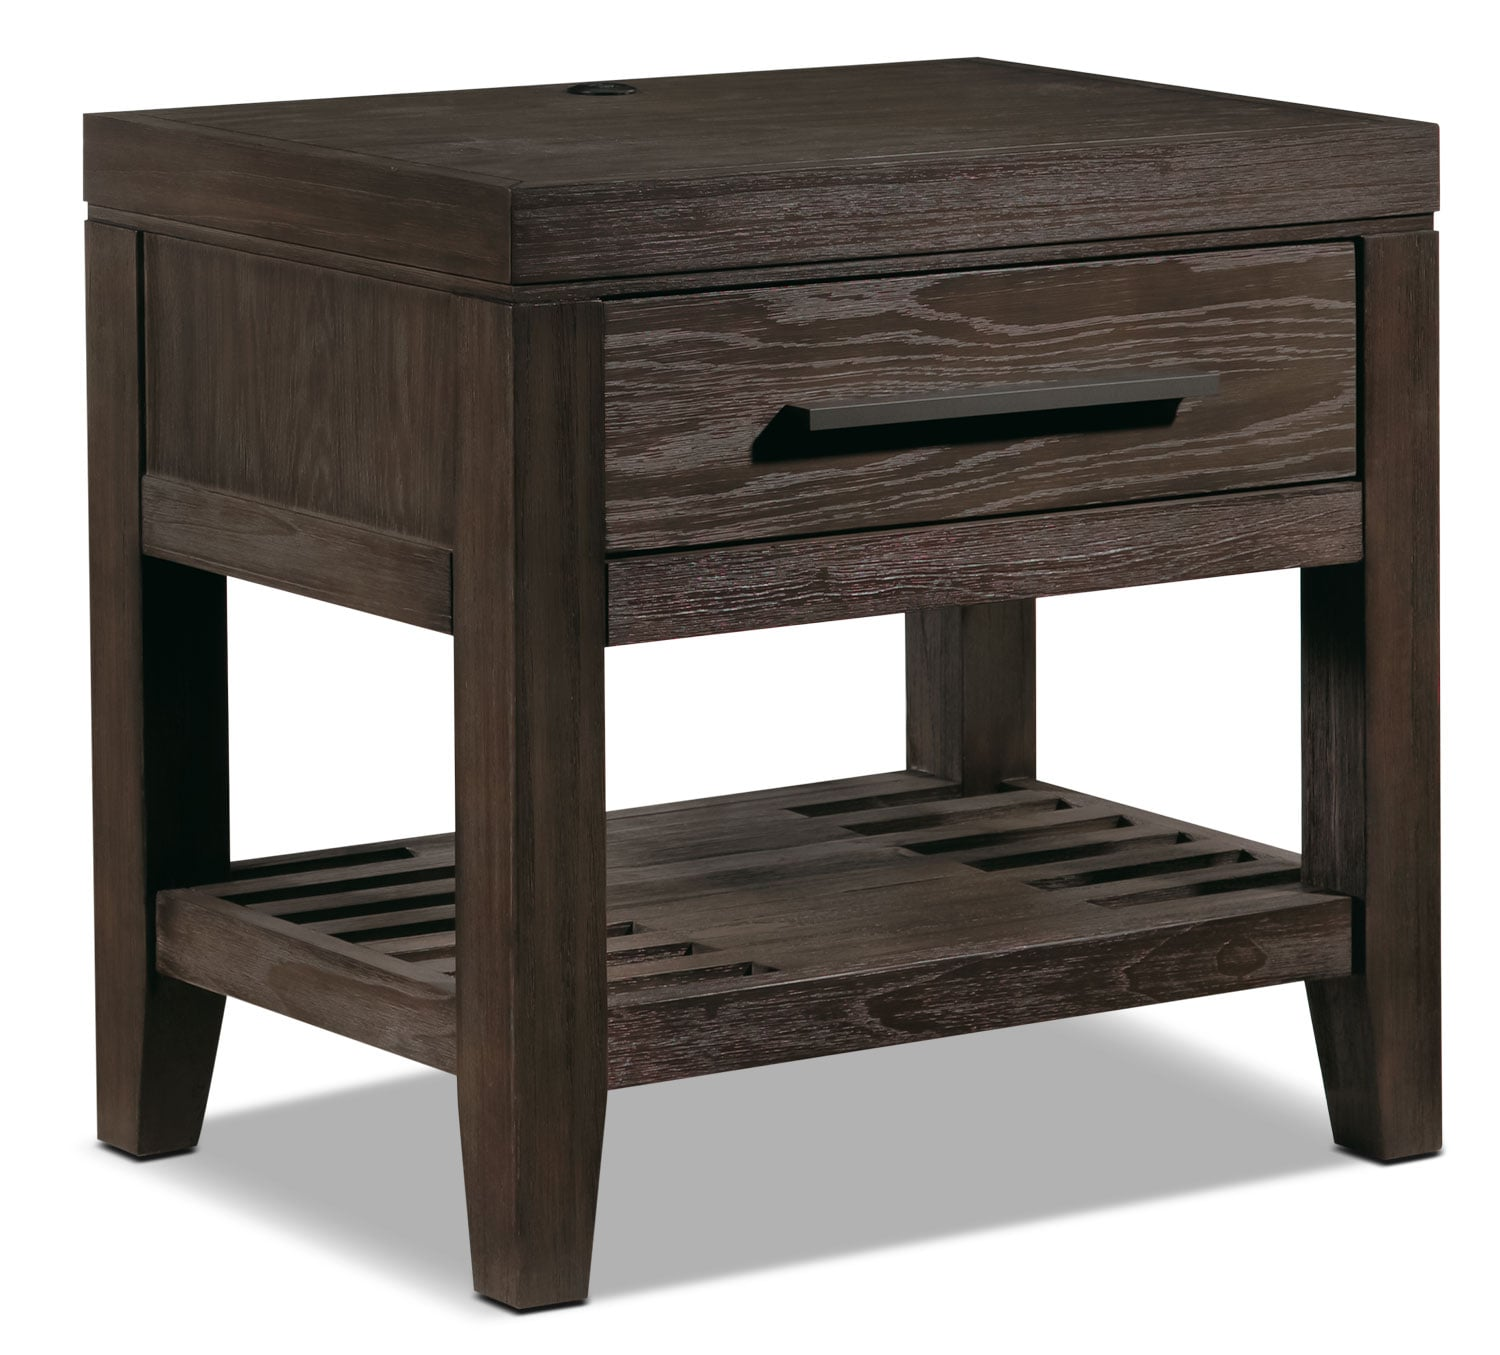 Bravo Night Table - Platinum Oak